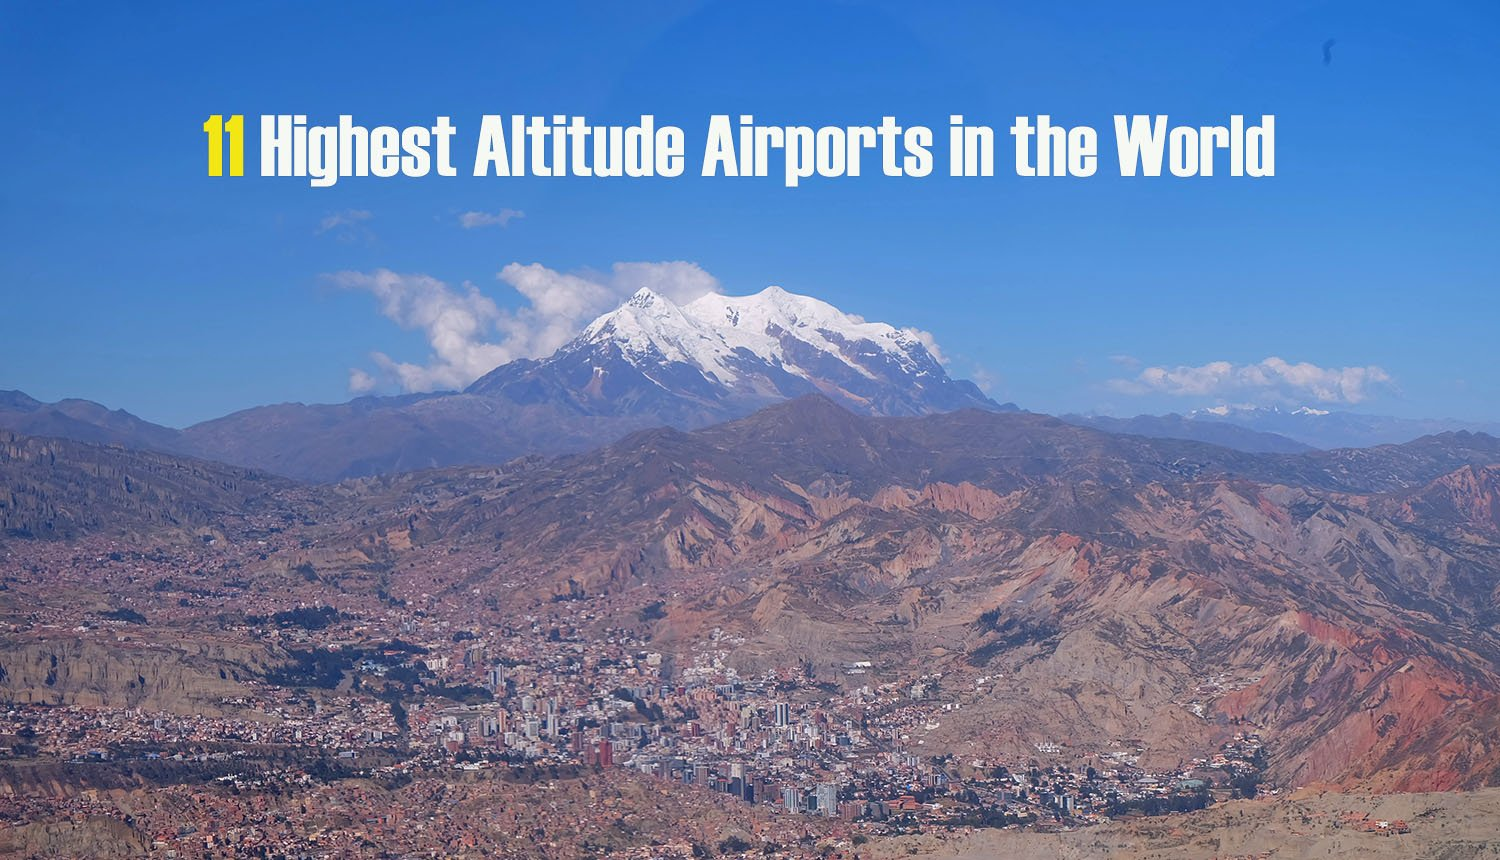 11 Highest Altitude Airports in the World